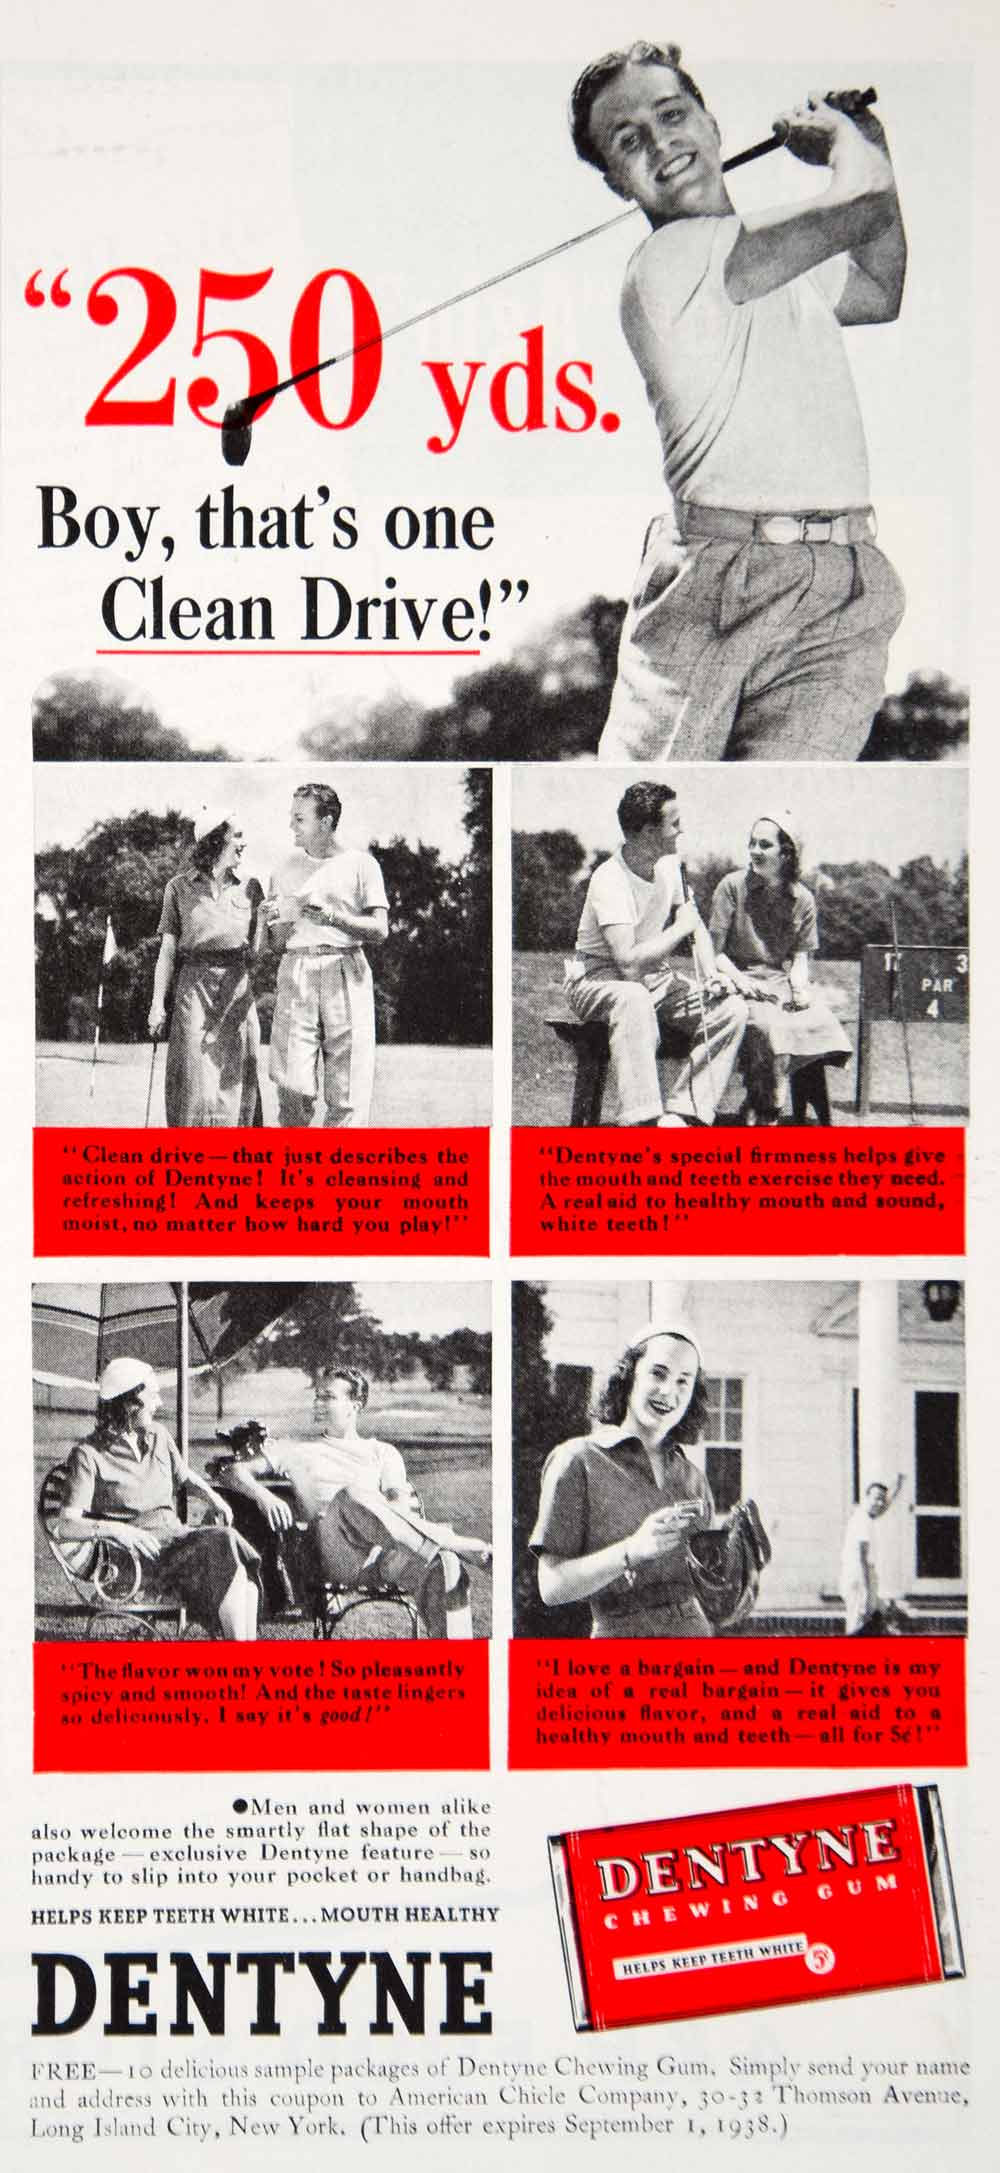 1938 Ad Vintage Dentyne Chewing Gum American Chicle Co. Golf Golfing Golfer YWD3